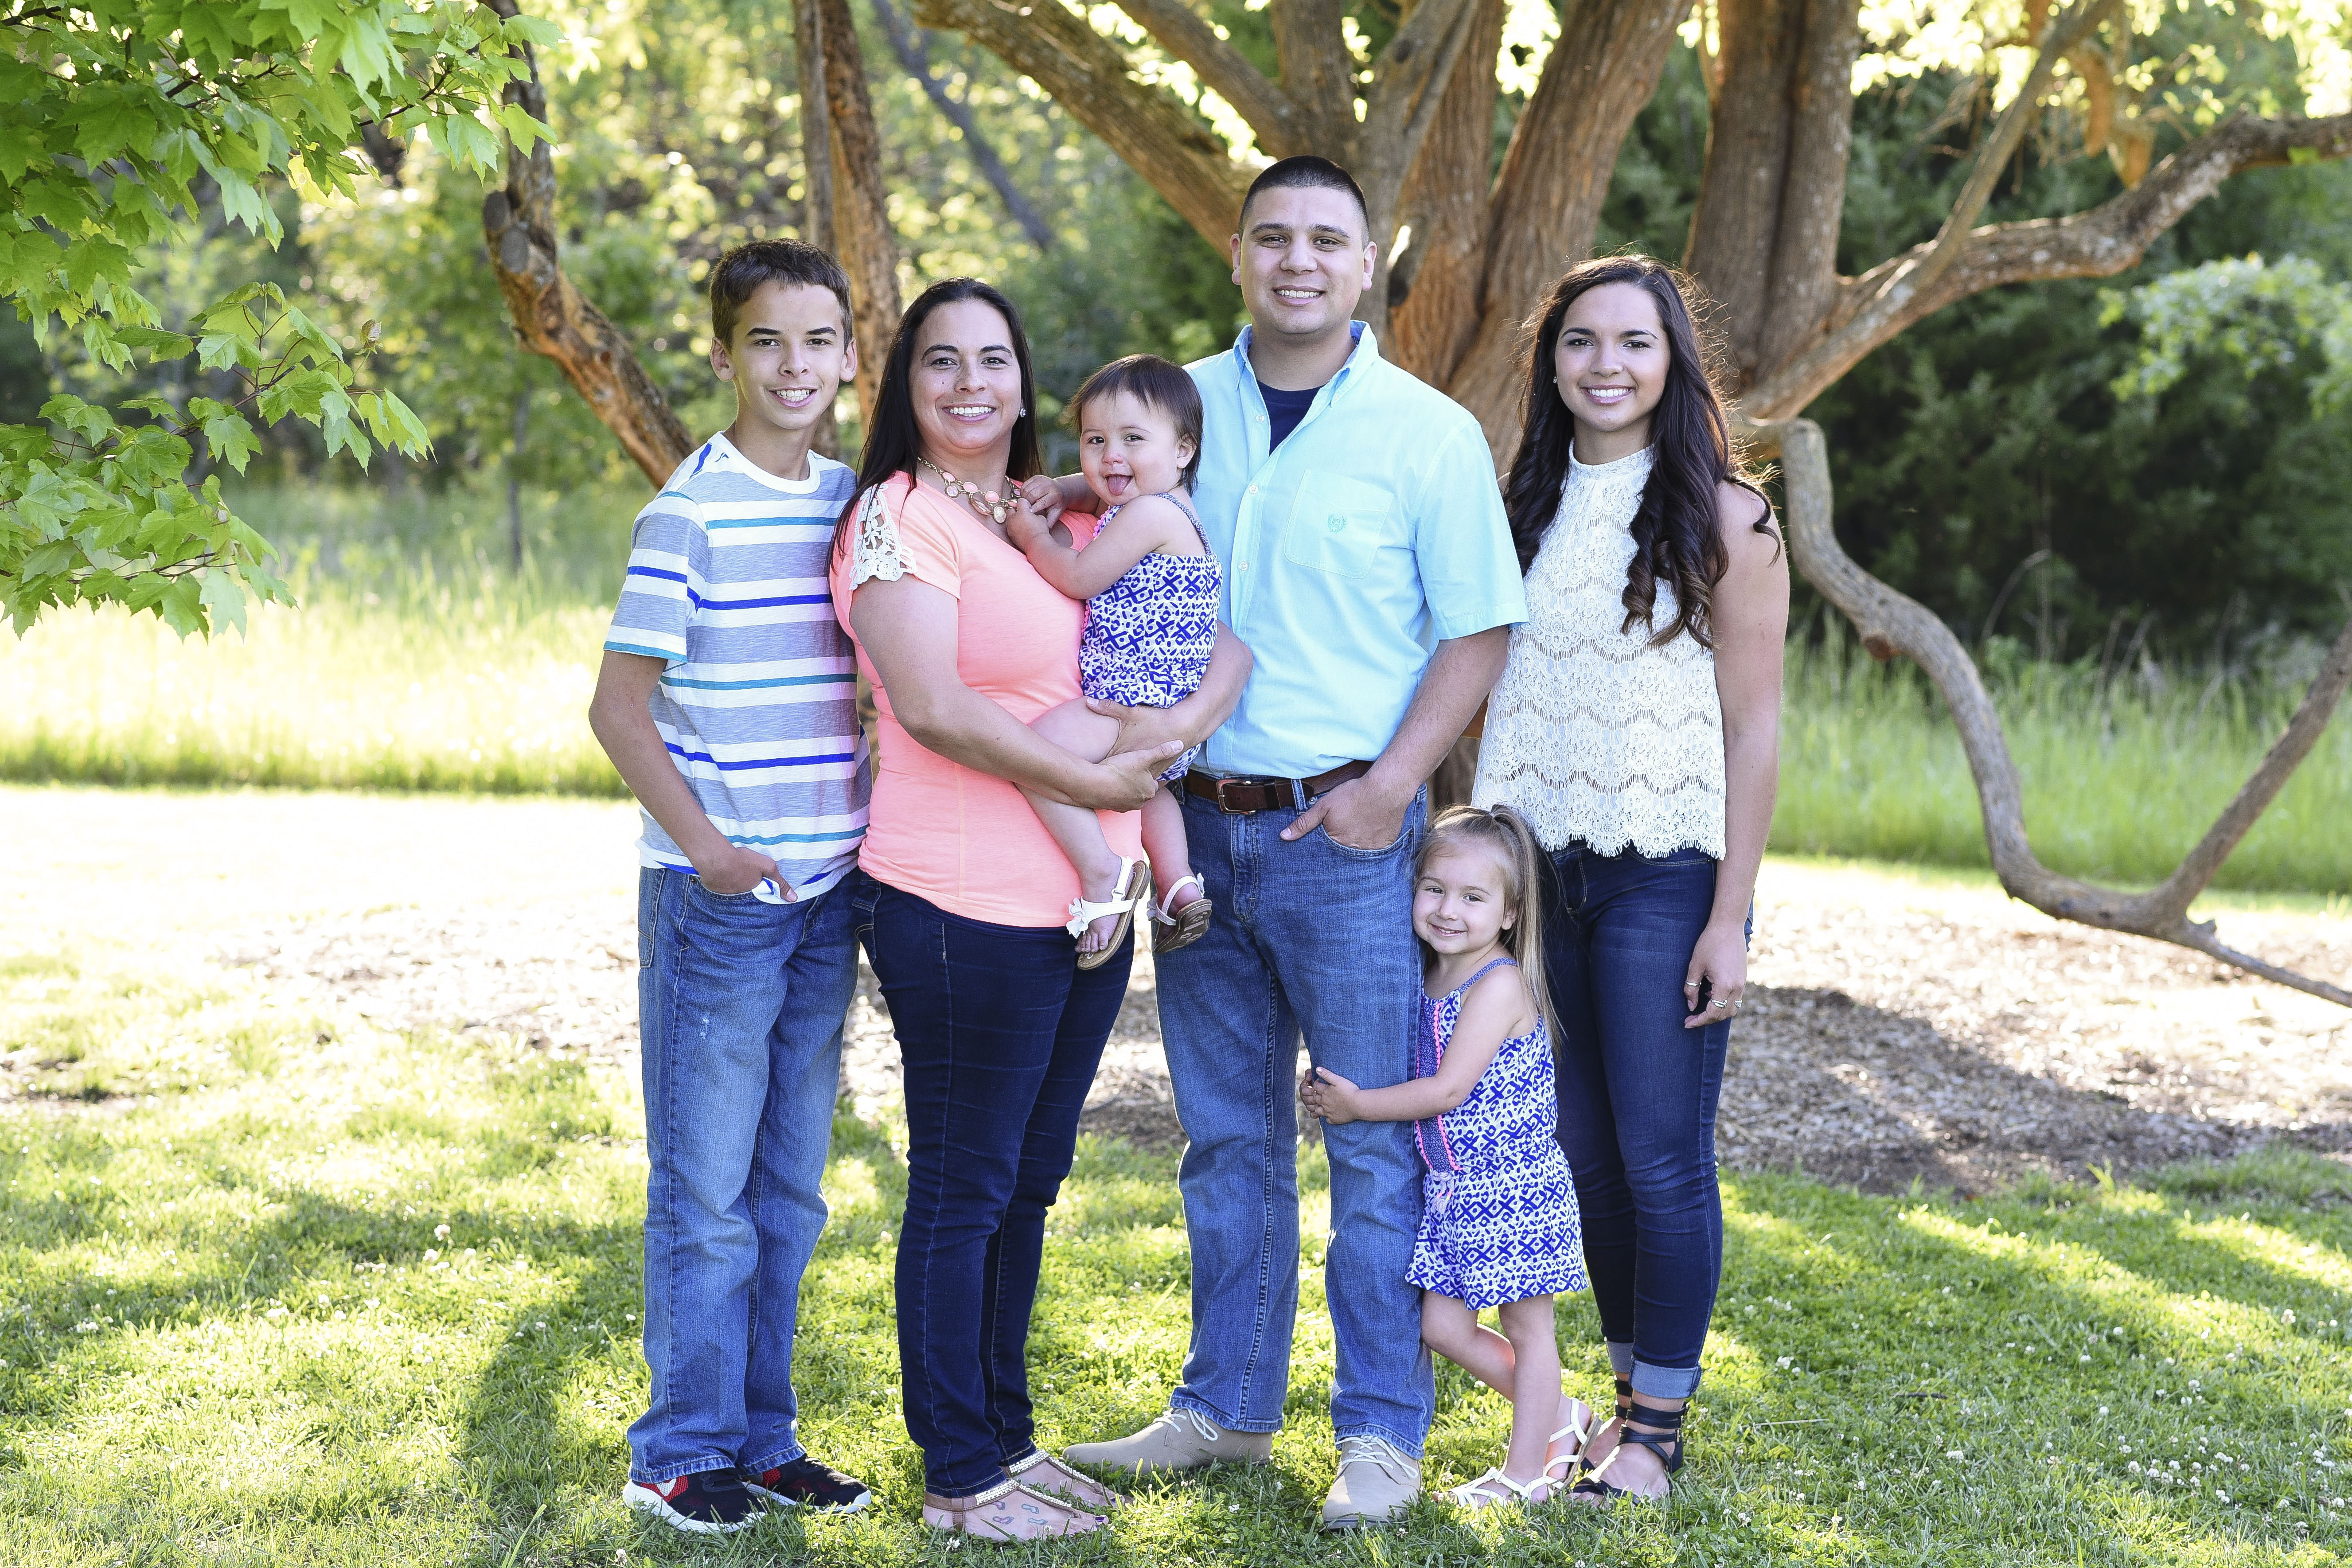 Desmond Henry Certified Financial Planner and family in Topeka Kansas